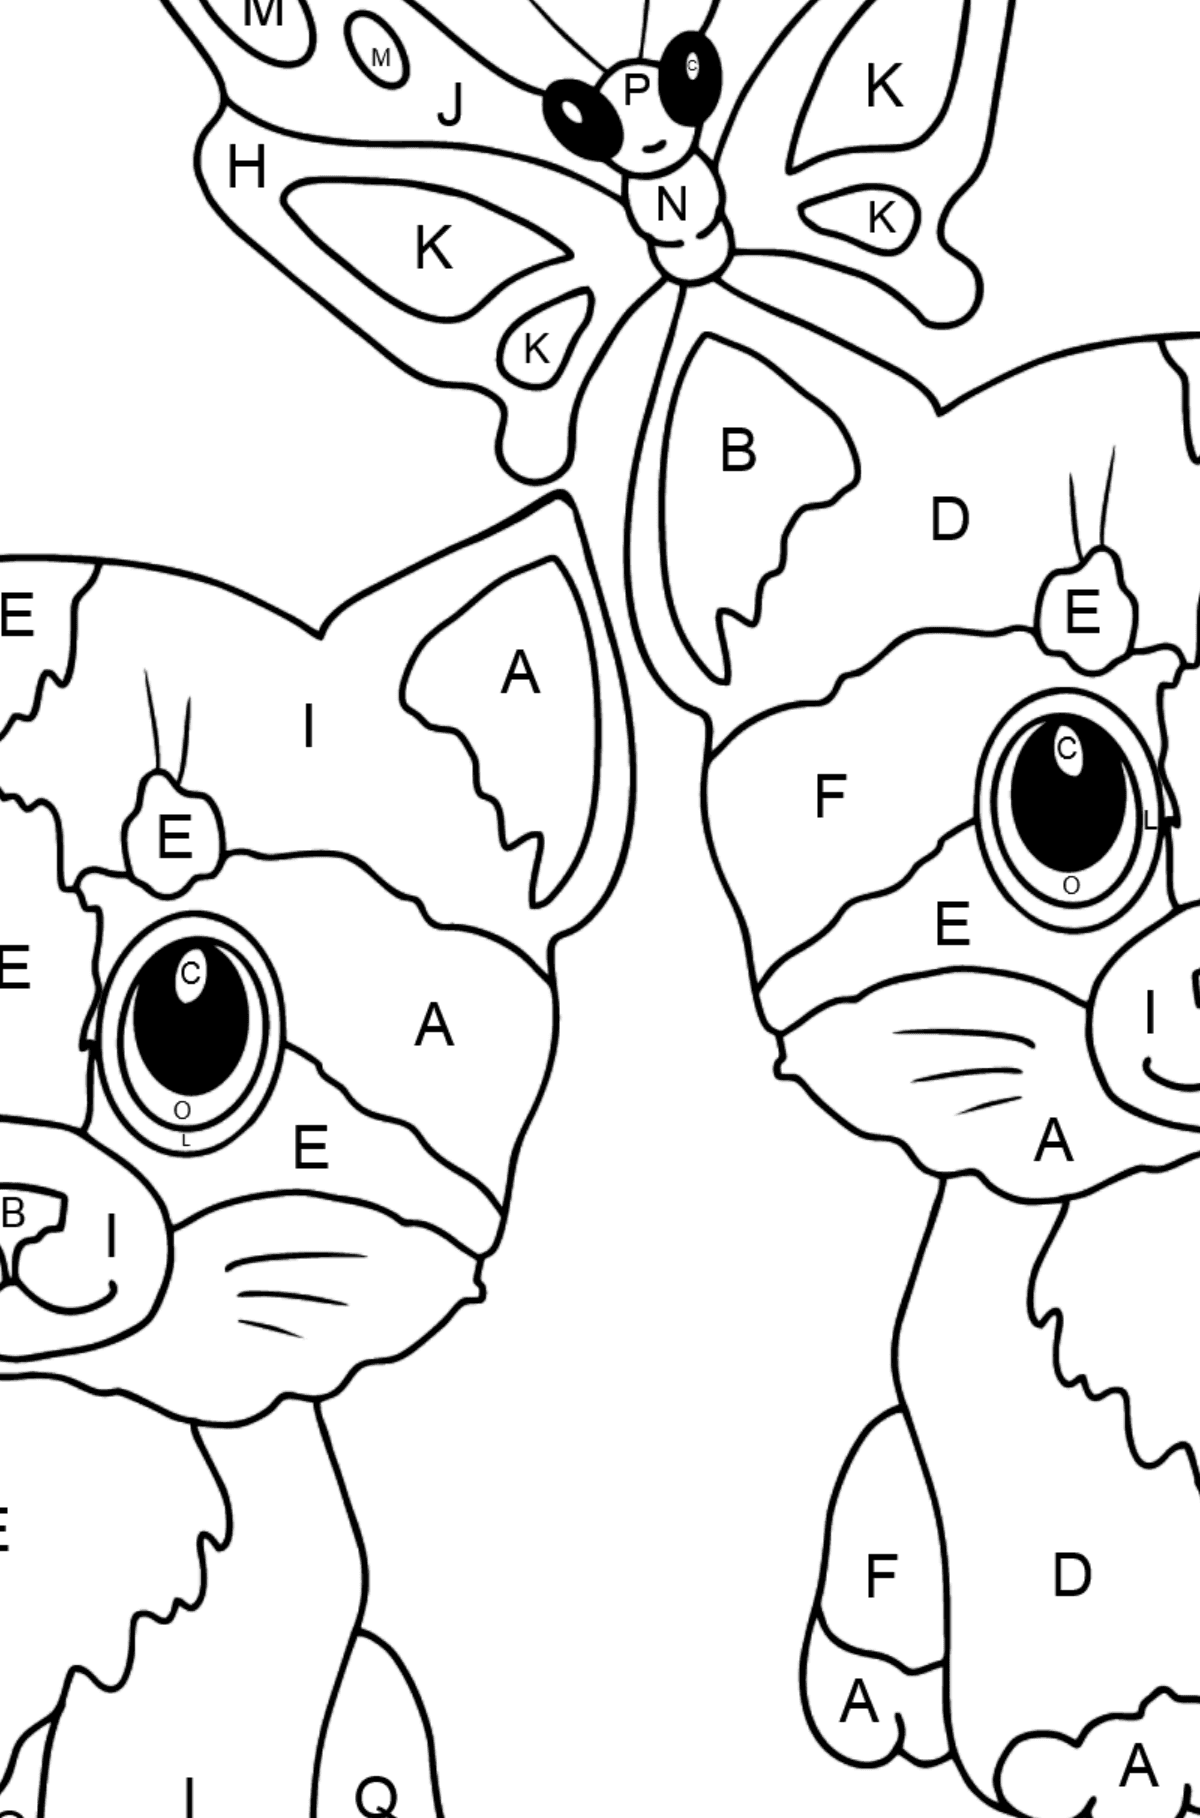 Coloring Page - Kittens are Playing Happily with a Butterfly  - Coloring by Letters for Kids